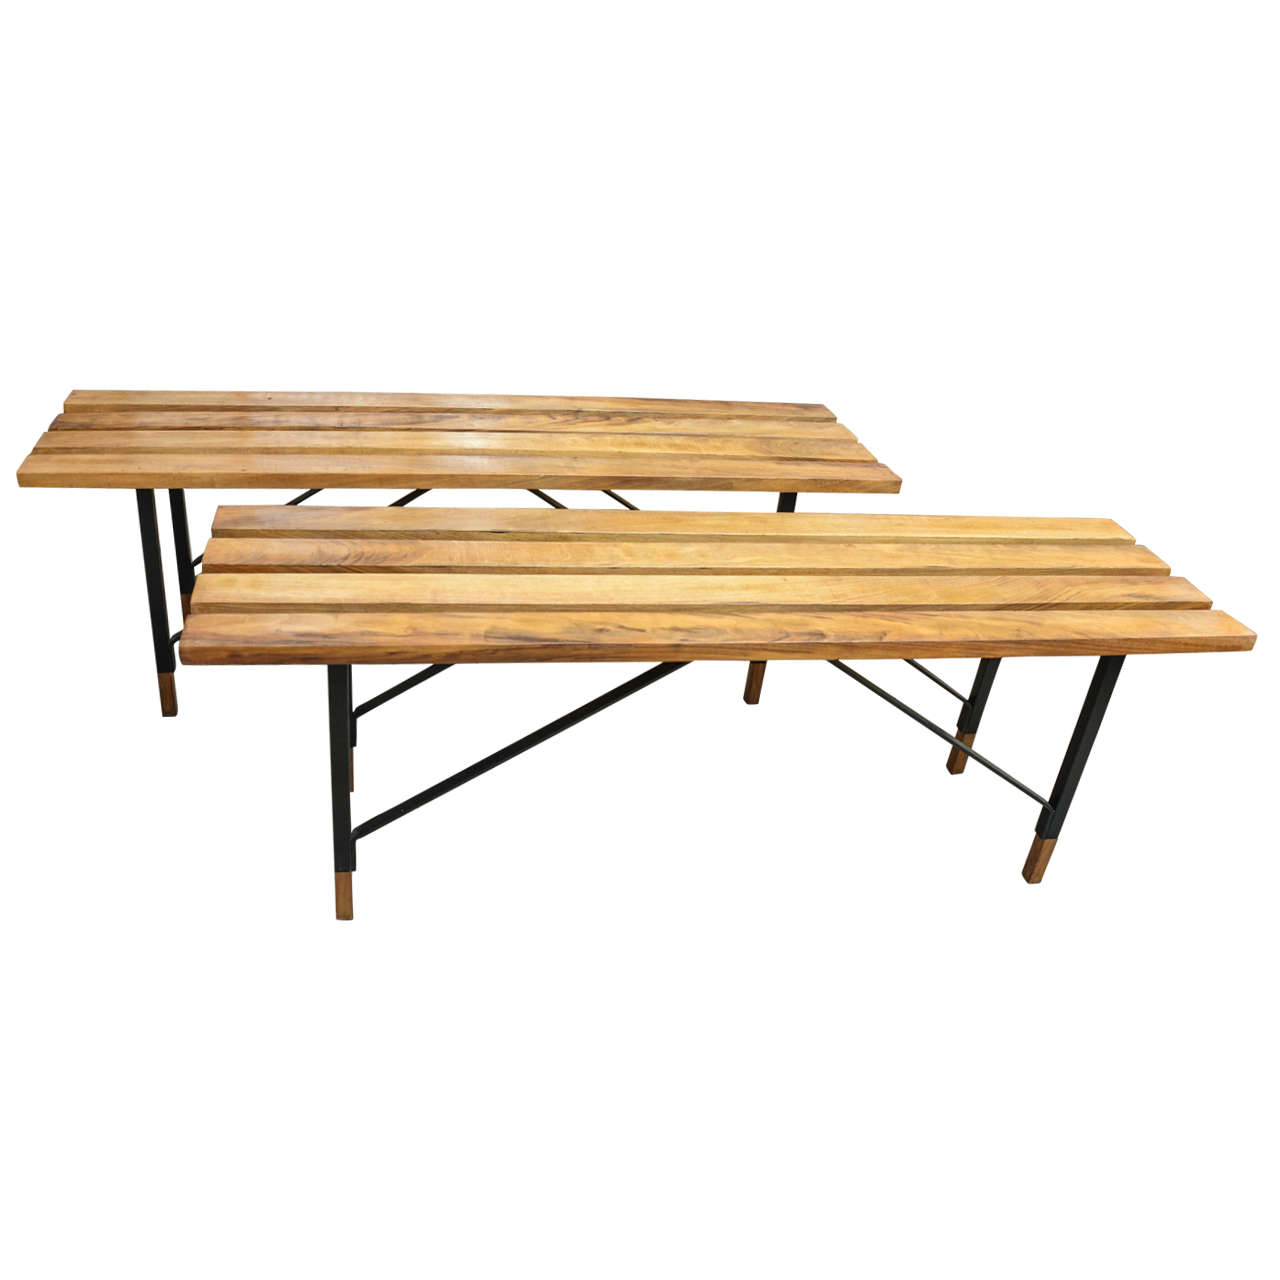 Wood Slat Benches With Black Metal Bases For Sale At 1stdibs